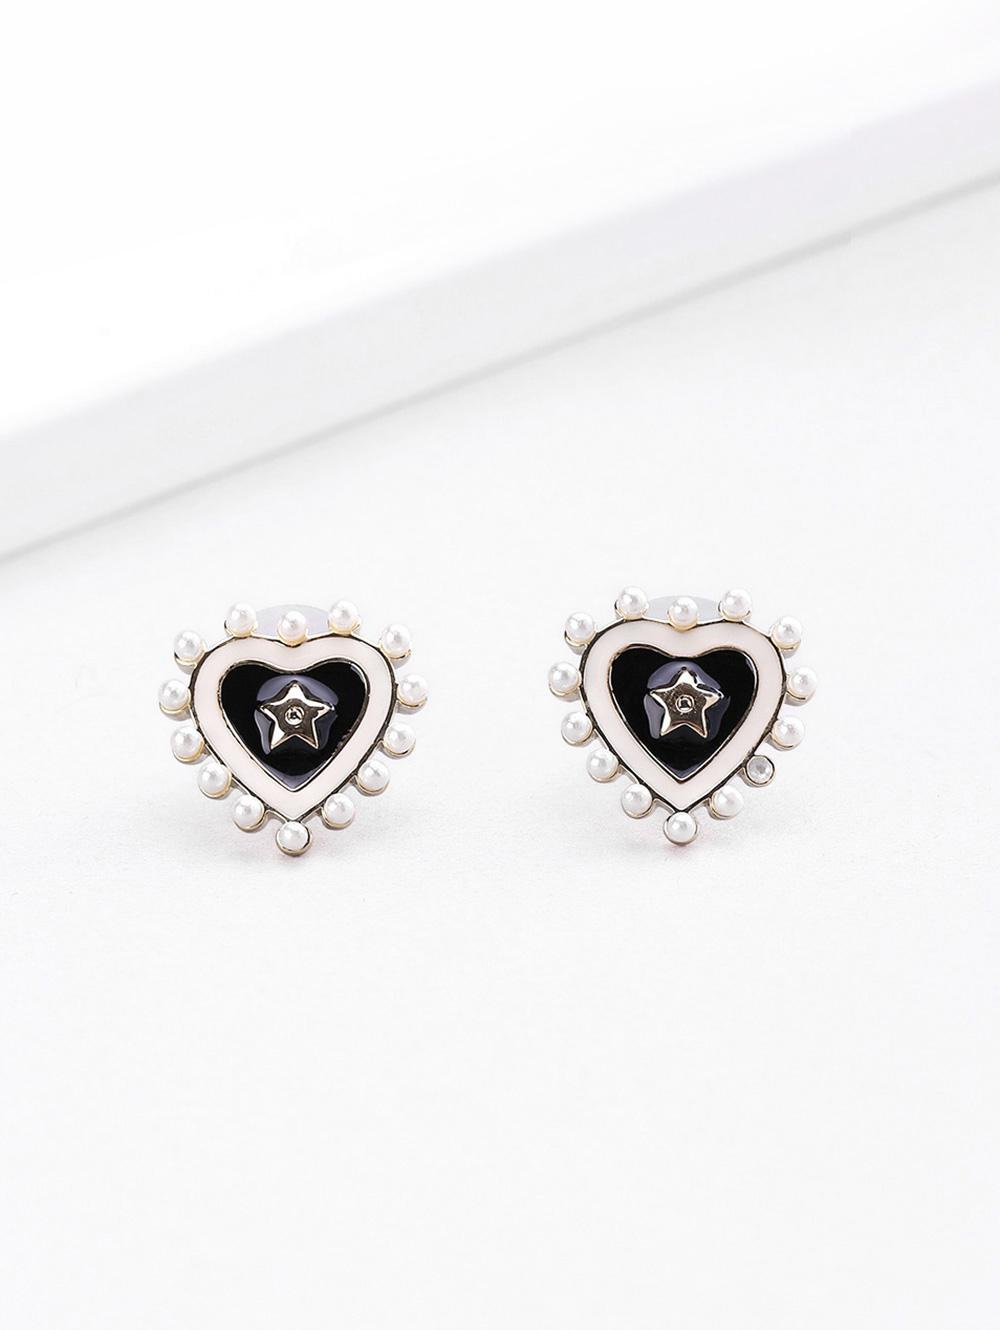 18K Gold Plated Star Heart Enamel Shape Stud Earrings